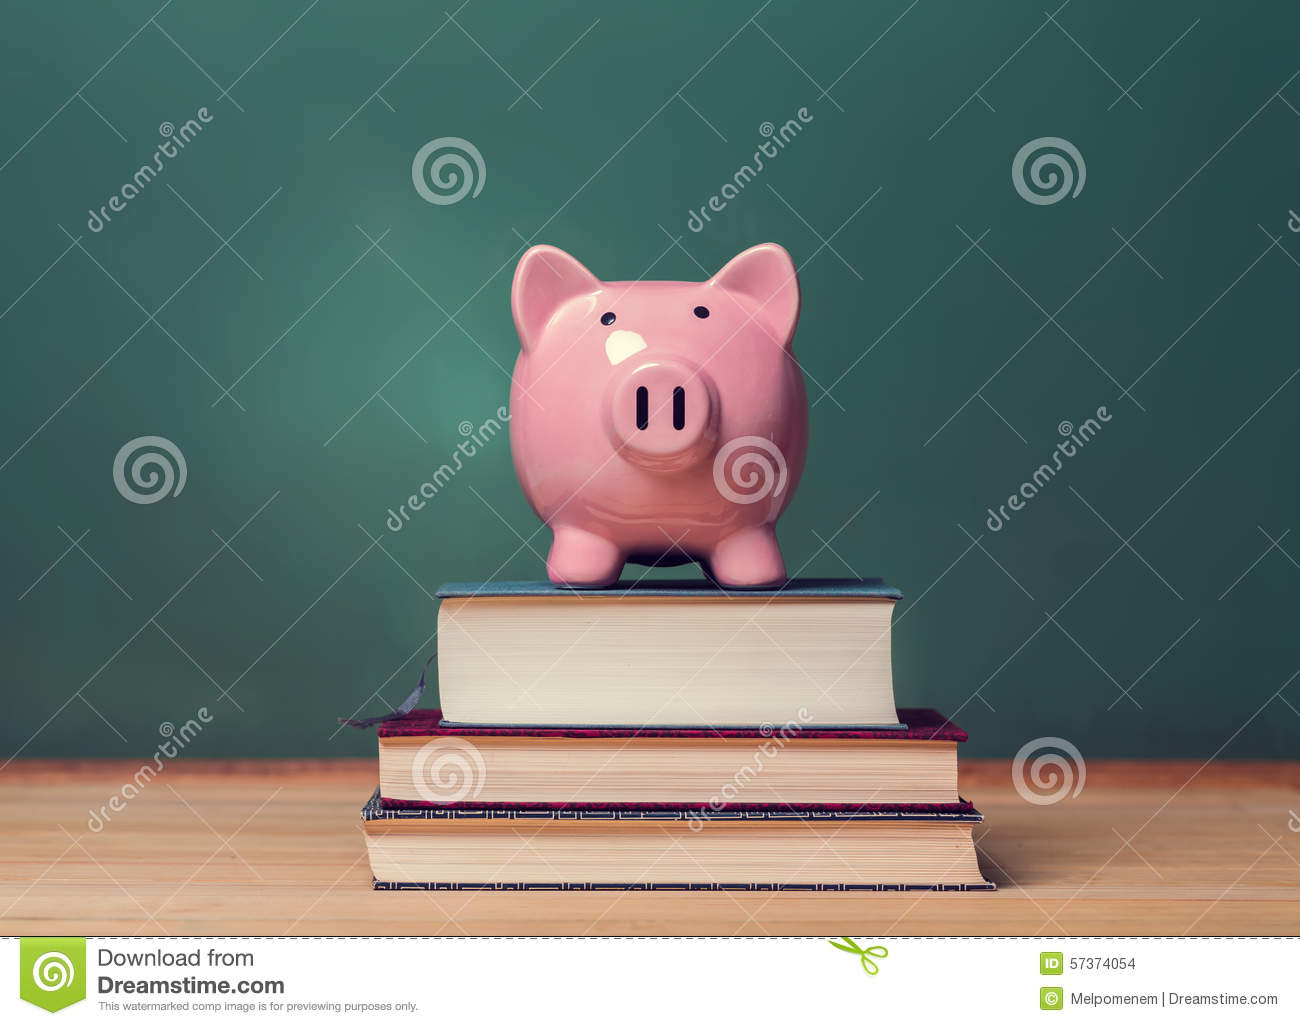 Creating a College Tuition Savings Plan